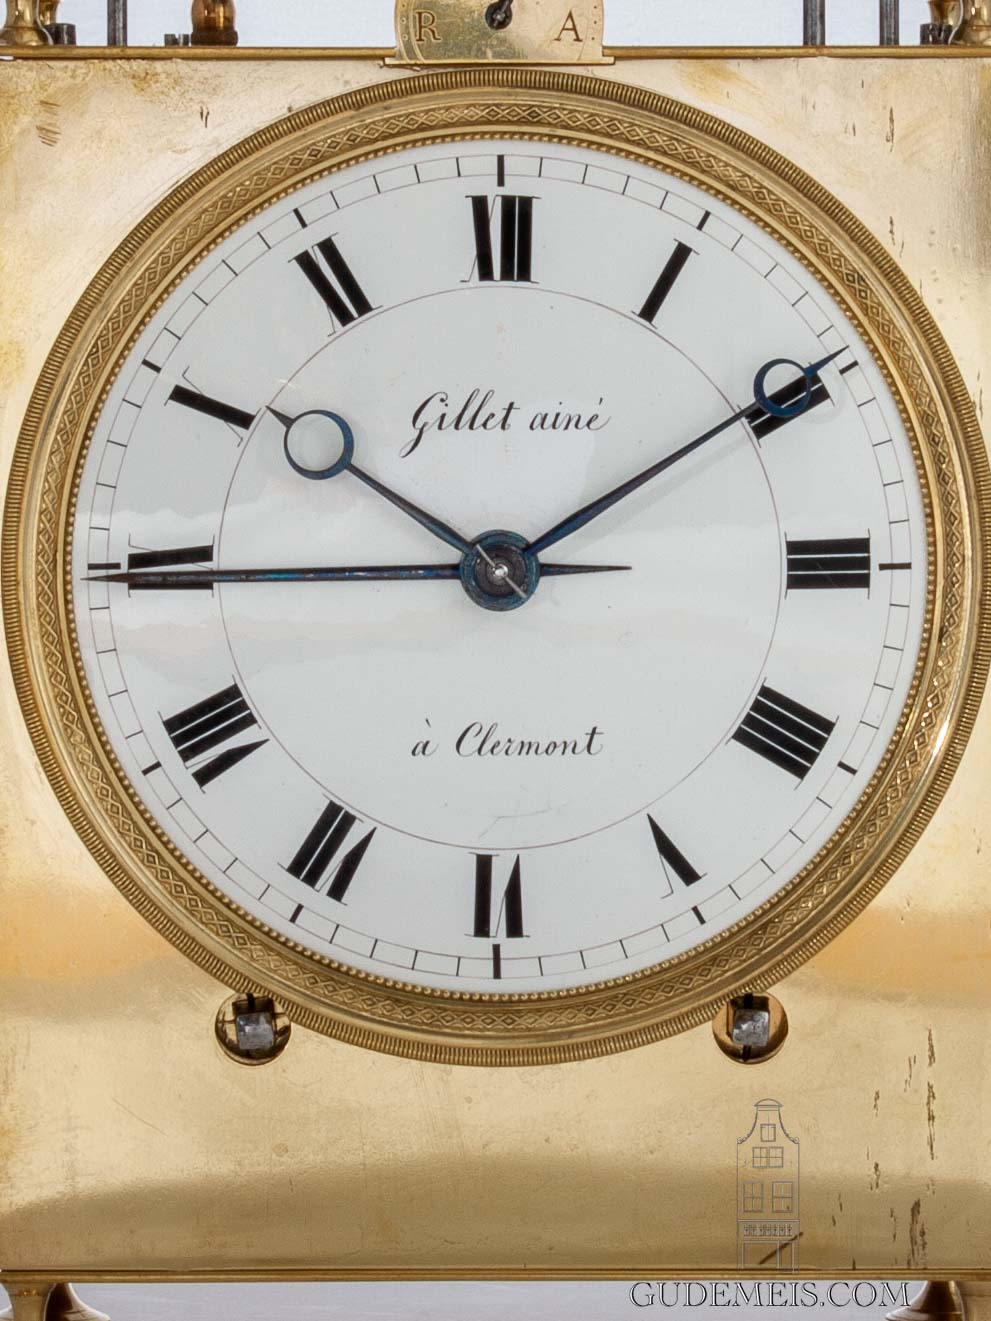 large-French-brass-oversized-quarter-striking-alarm-two-bells-gillet-aine-Clermont-antique-travel-clock-